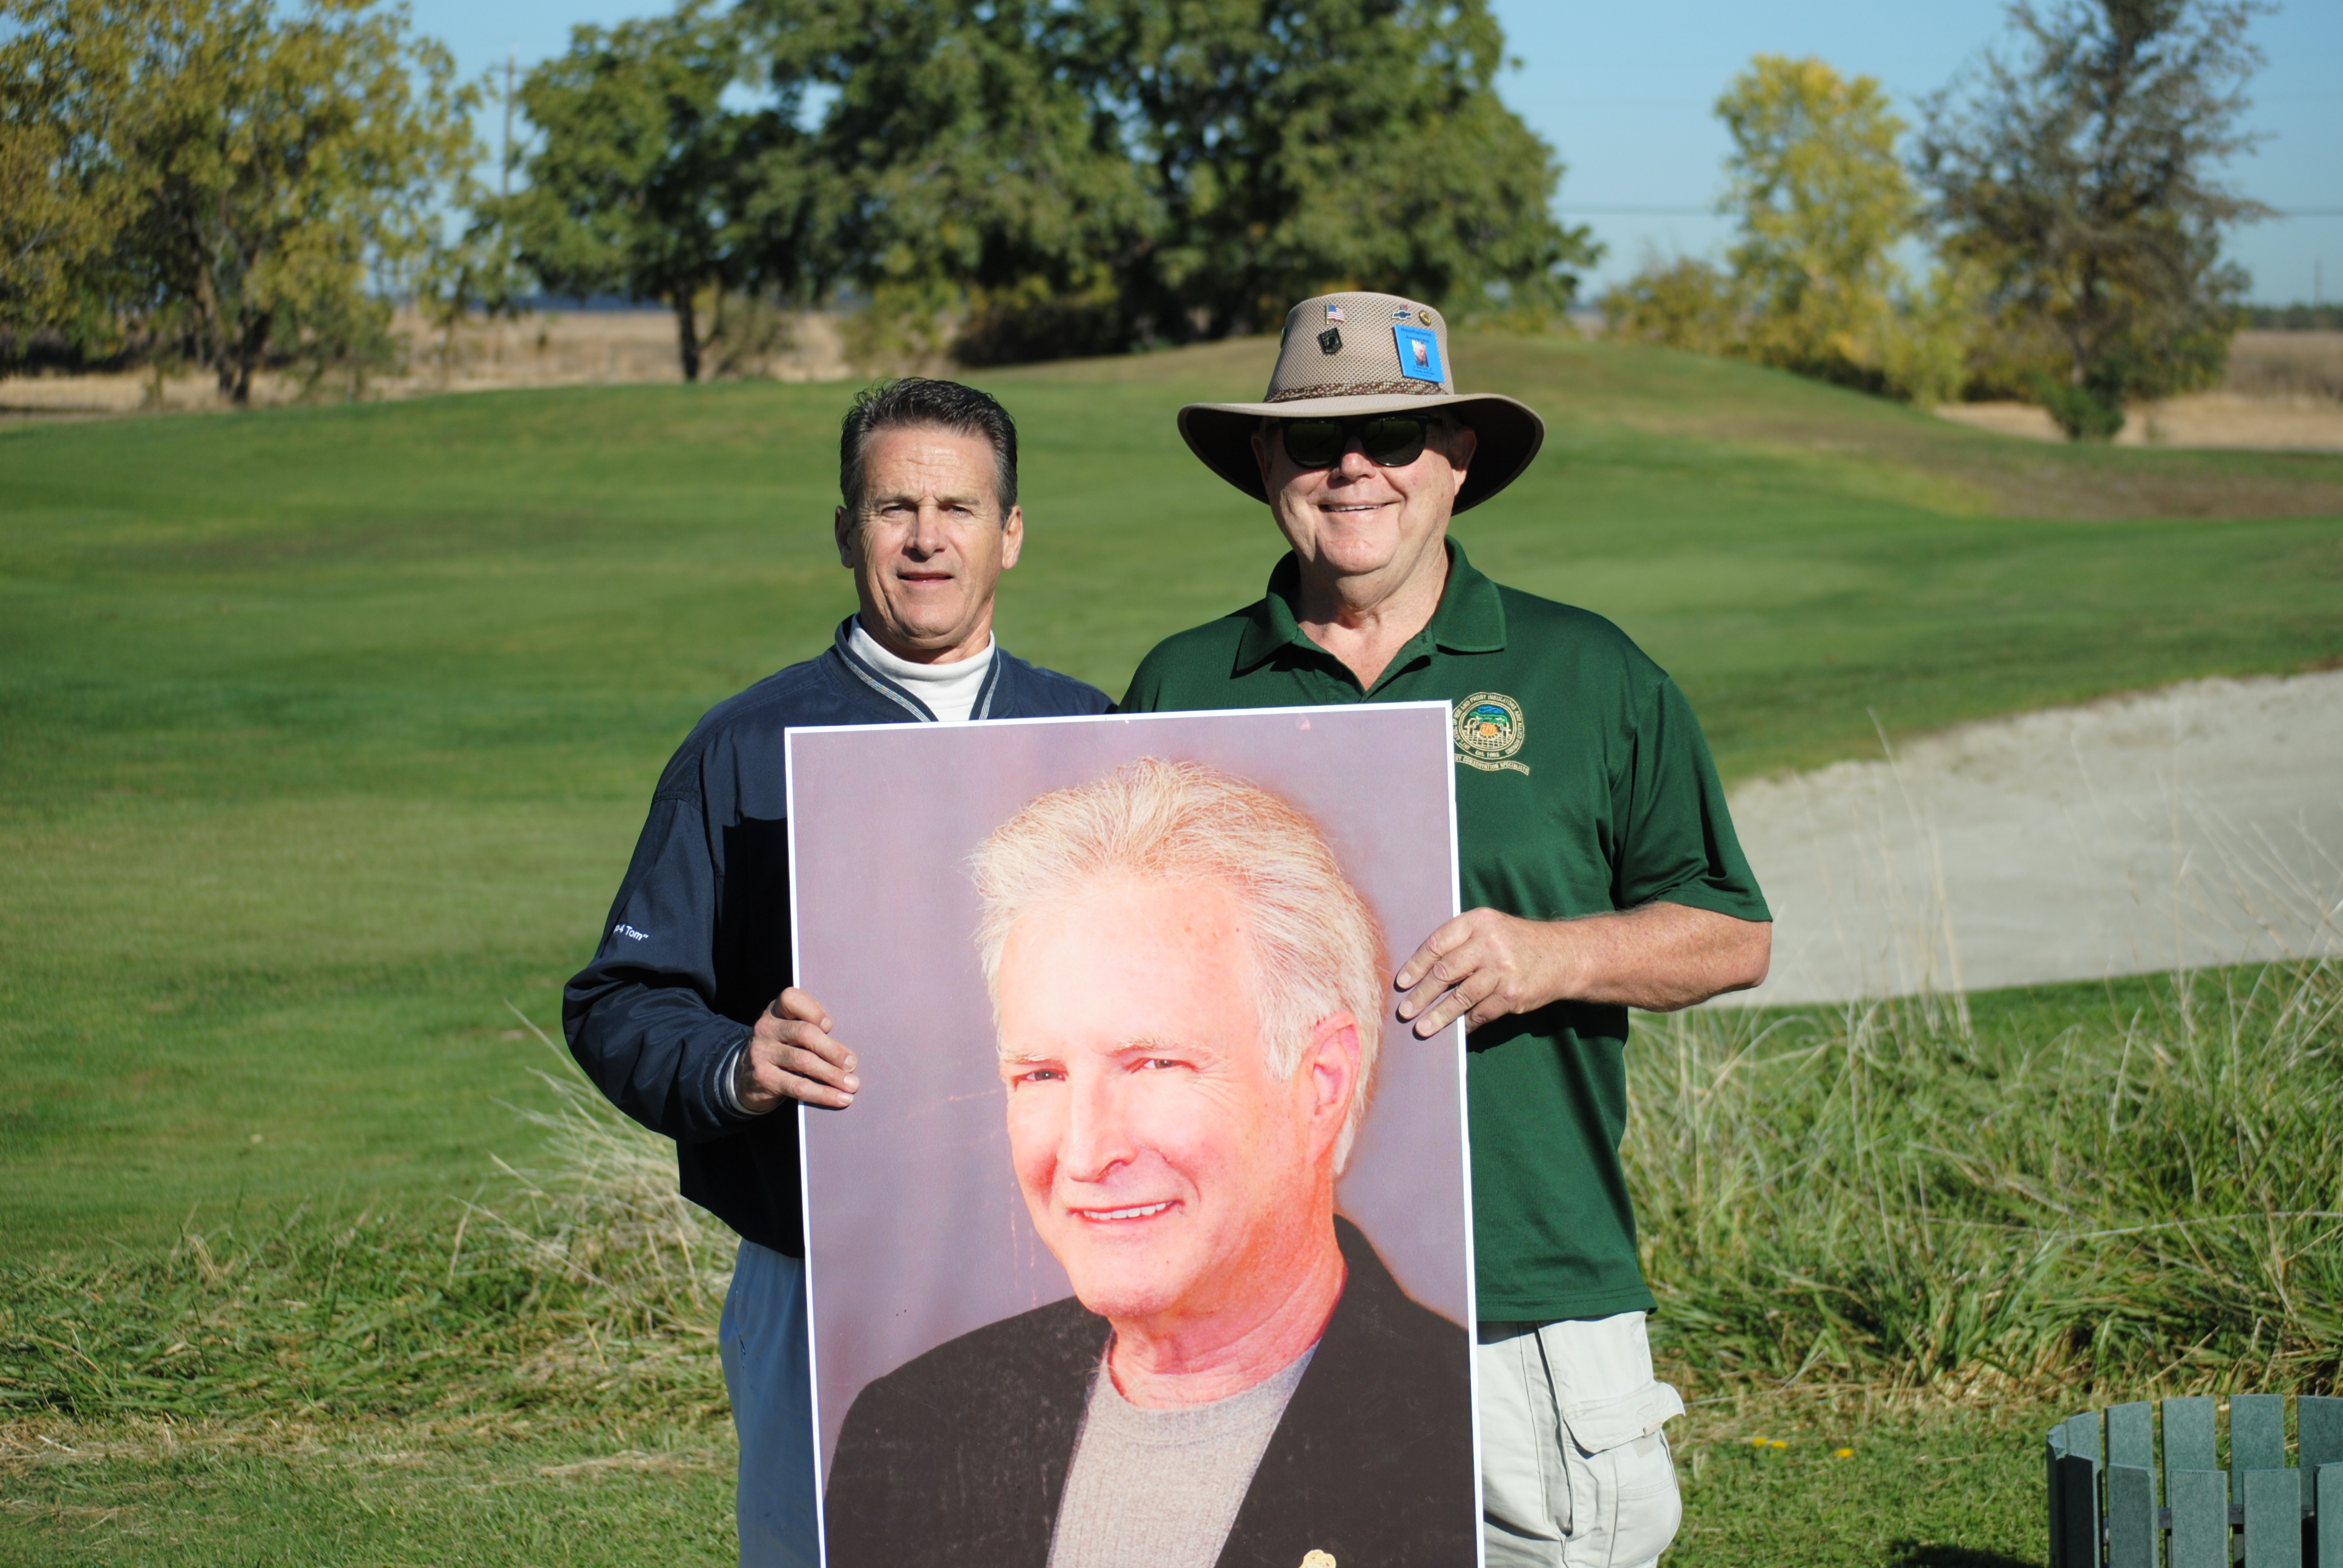 Greg Larkins and Geoff Millar of Asbestos Workers Local 16 pose with a photo of Tom Lawson during this year's annual golf tournament.